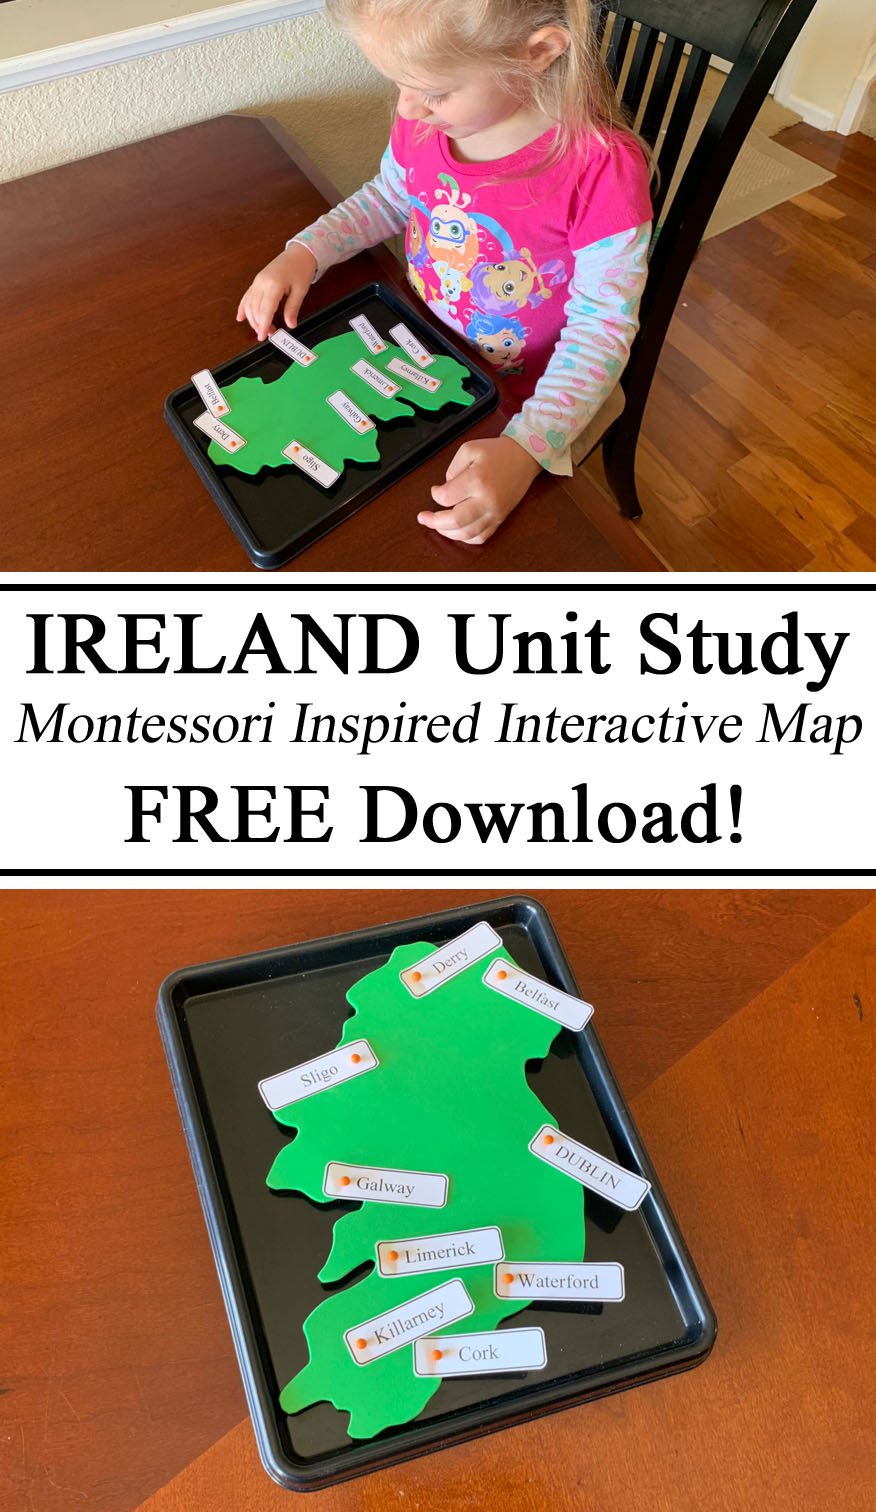 Montessori Geography Ireland Unit St. Patricks Saint Paddy's Paddys Patrick's Day Towns Cities Ireland Republik Northern Ireland Map Pins Preschooler, Kindergarten PreK, Inspiration, Homeschool, Homeschooling, Ideas, Hands on Learning, Teach them young, Travelingthroughlearning